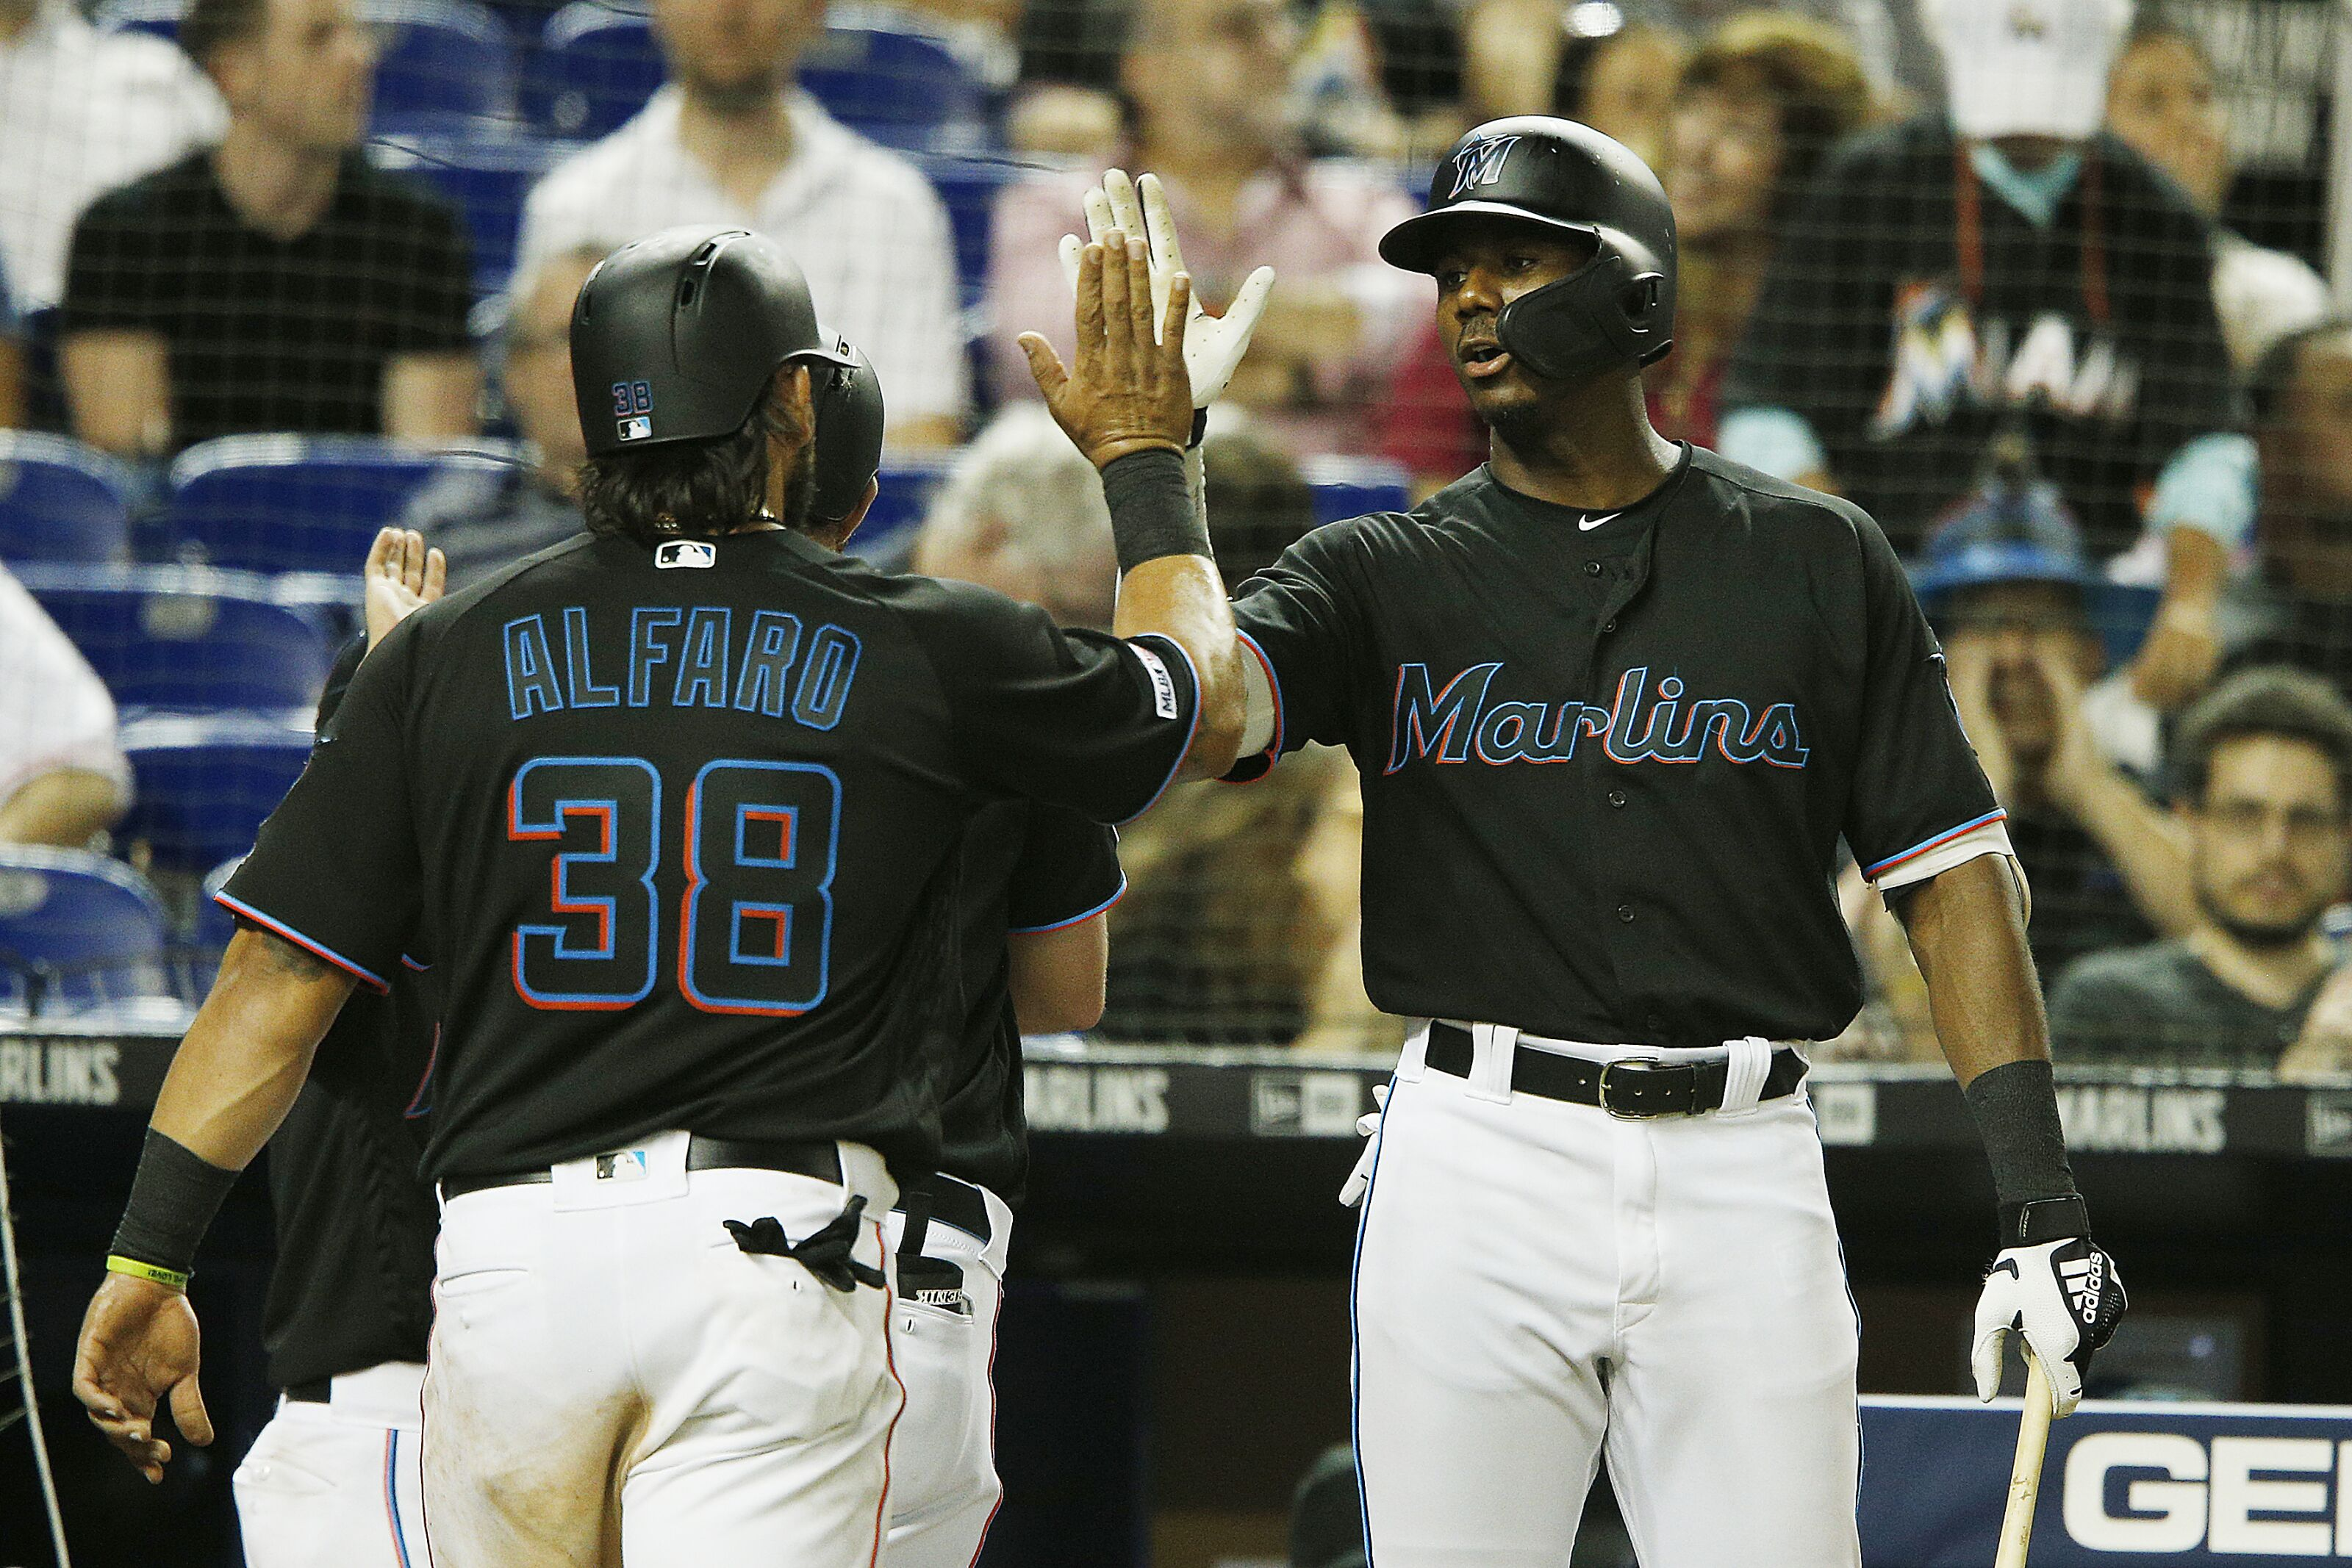 Marlins Open to Everything: Wild Off-season is a Go